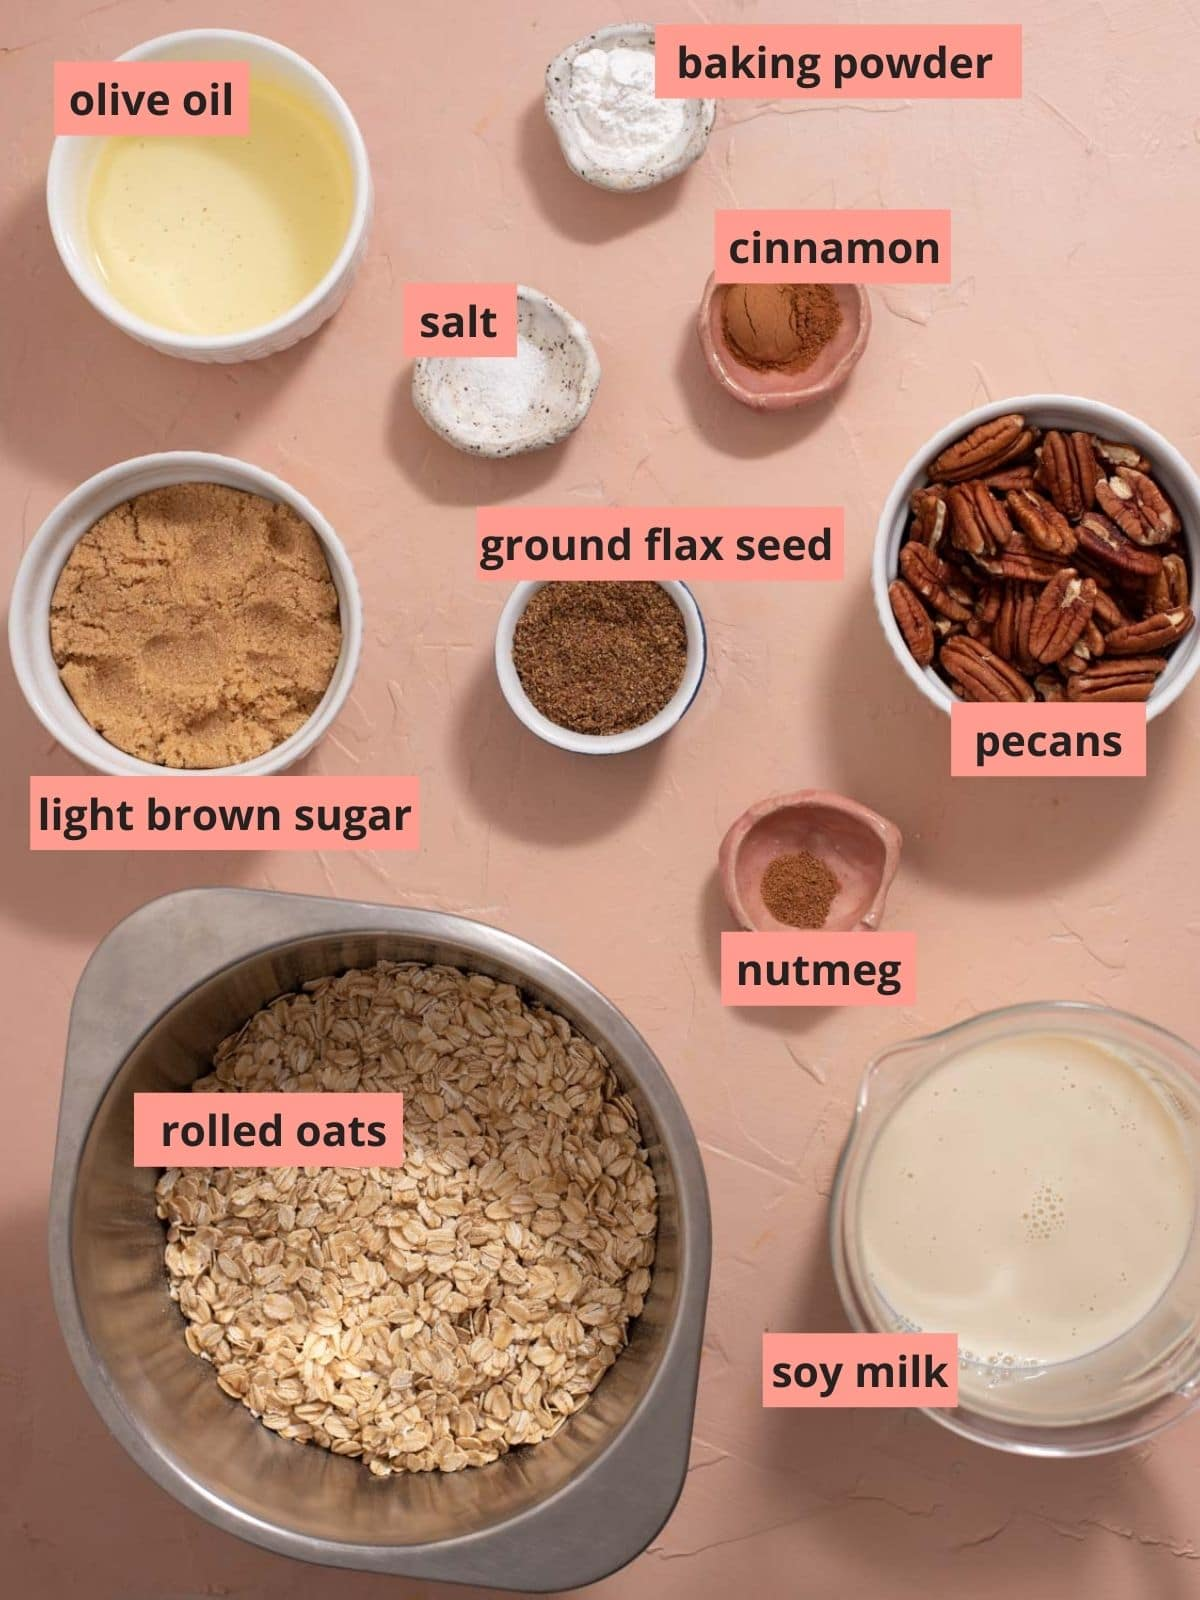 Labeled ingredients used to make baked oatmeal